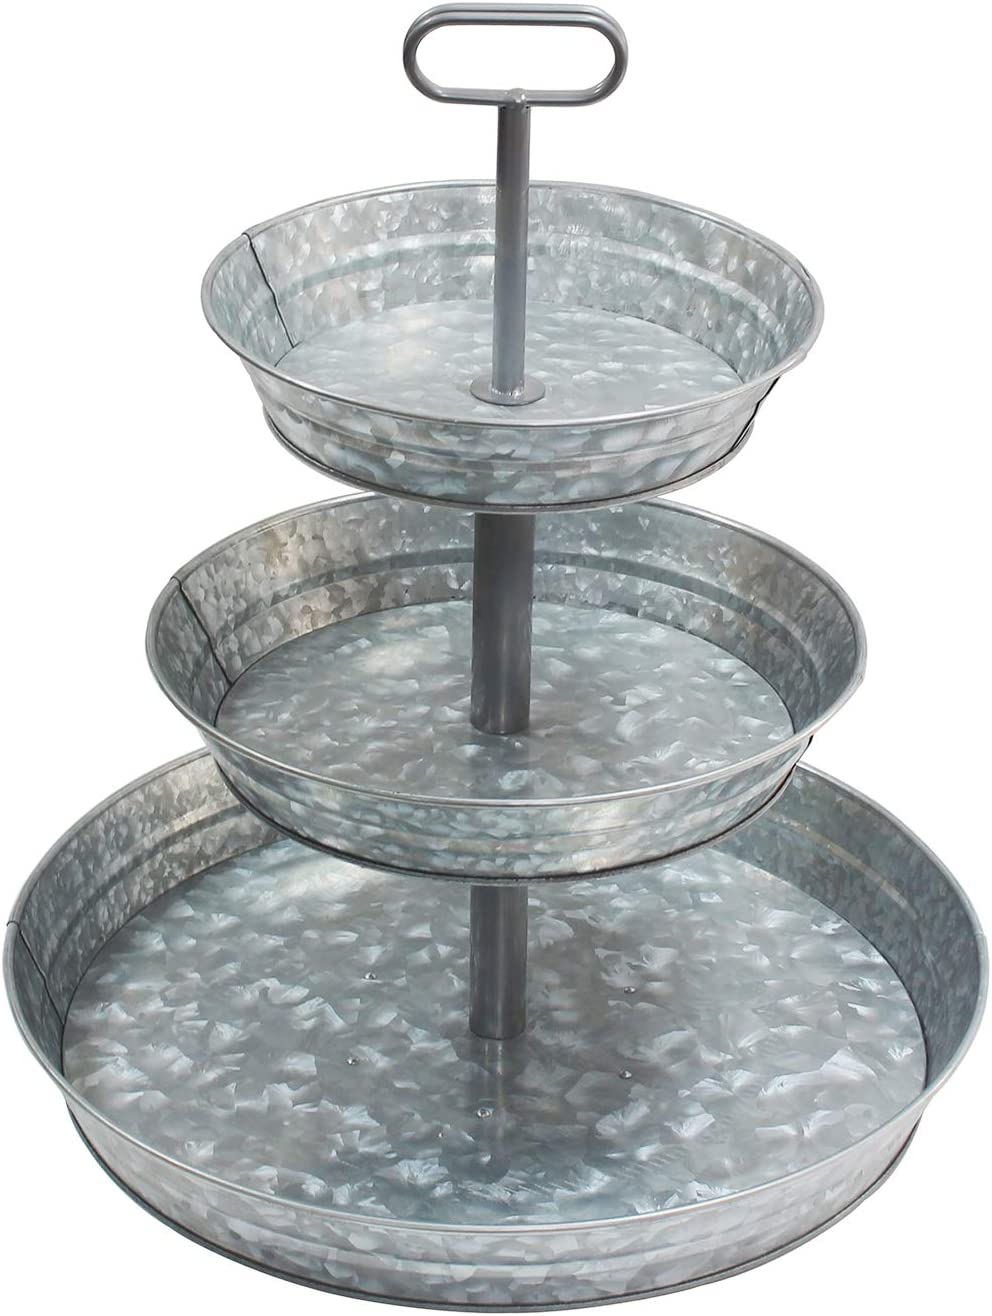 4W 3 Tiered Serving Stand, Galvanized Tiered Tray with Handles Rustic Style Metal Tiered Serving Tray for Parties Outdoor Activities for Dessert, Fruit, Cupcake, Farmhouse Décor and Display Stand